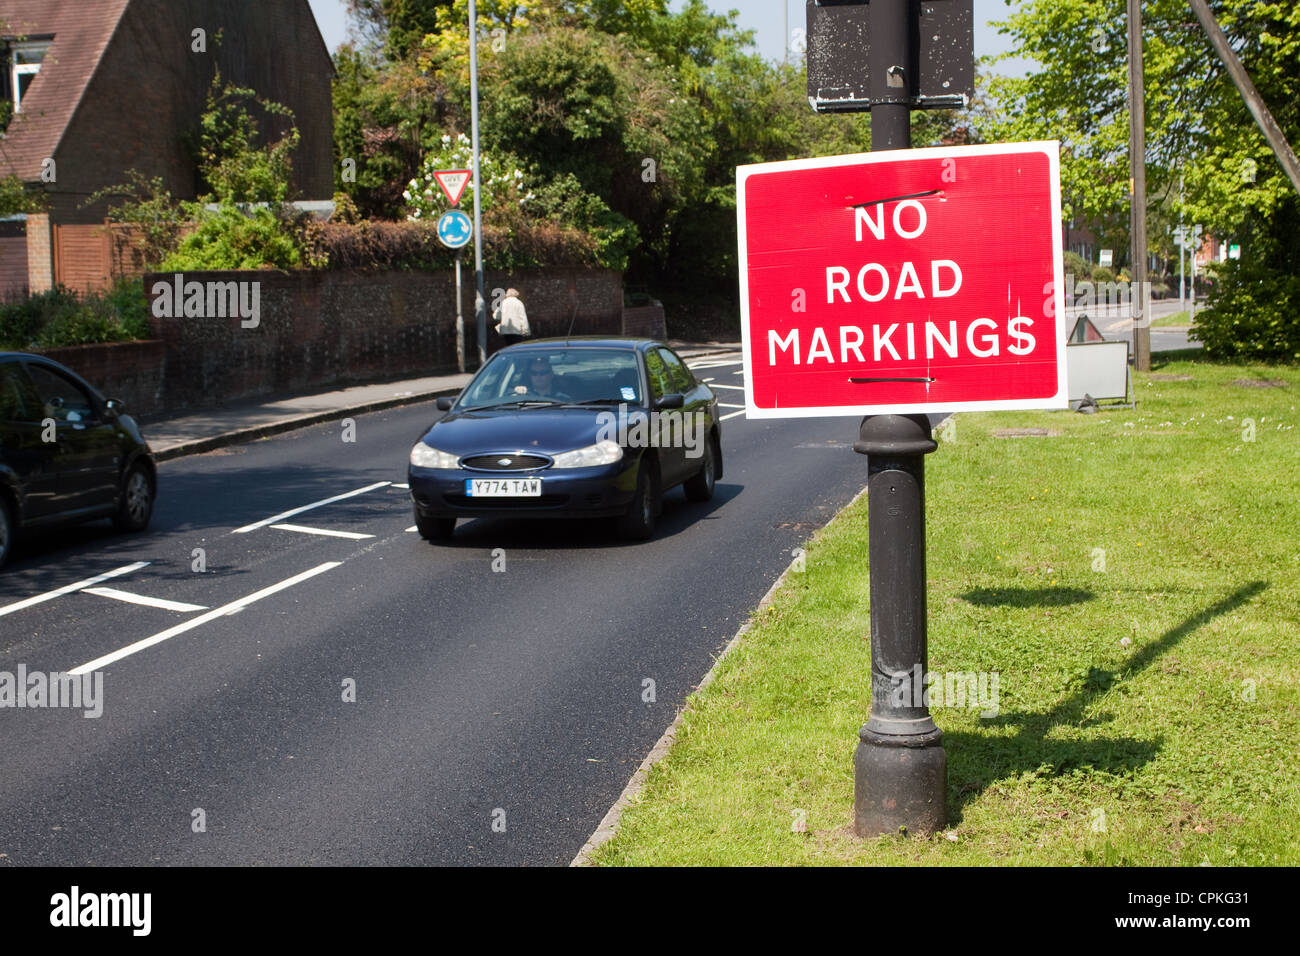 No road markings sign on a lamppost - Stock Image